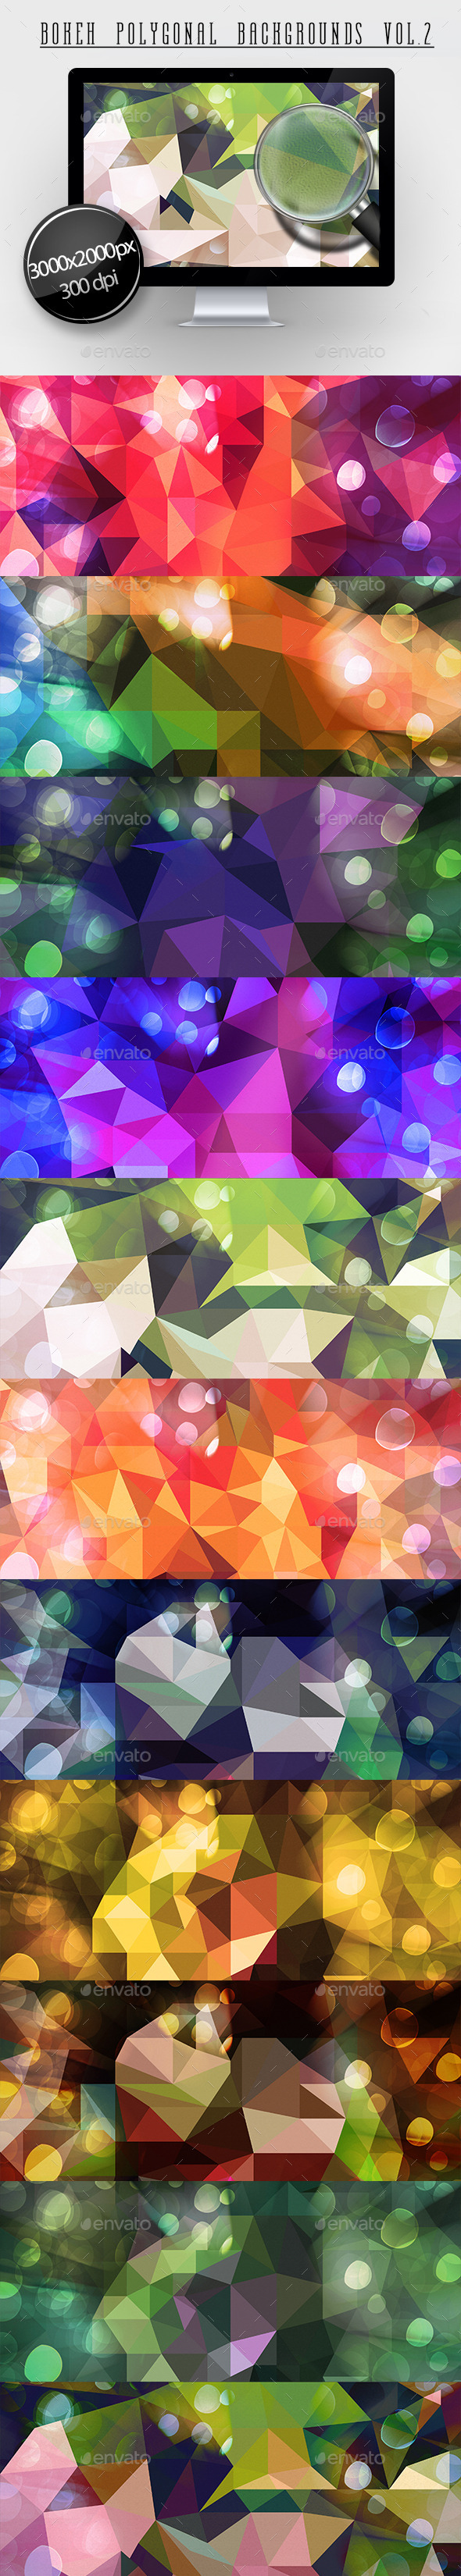 GraphicRiver Bokeh Polygonal Backgrounds Vol.2 11379084